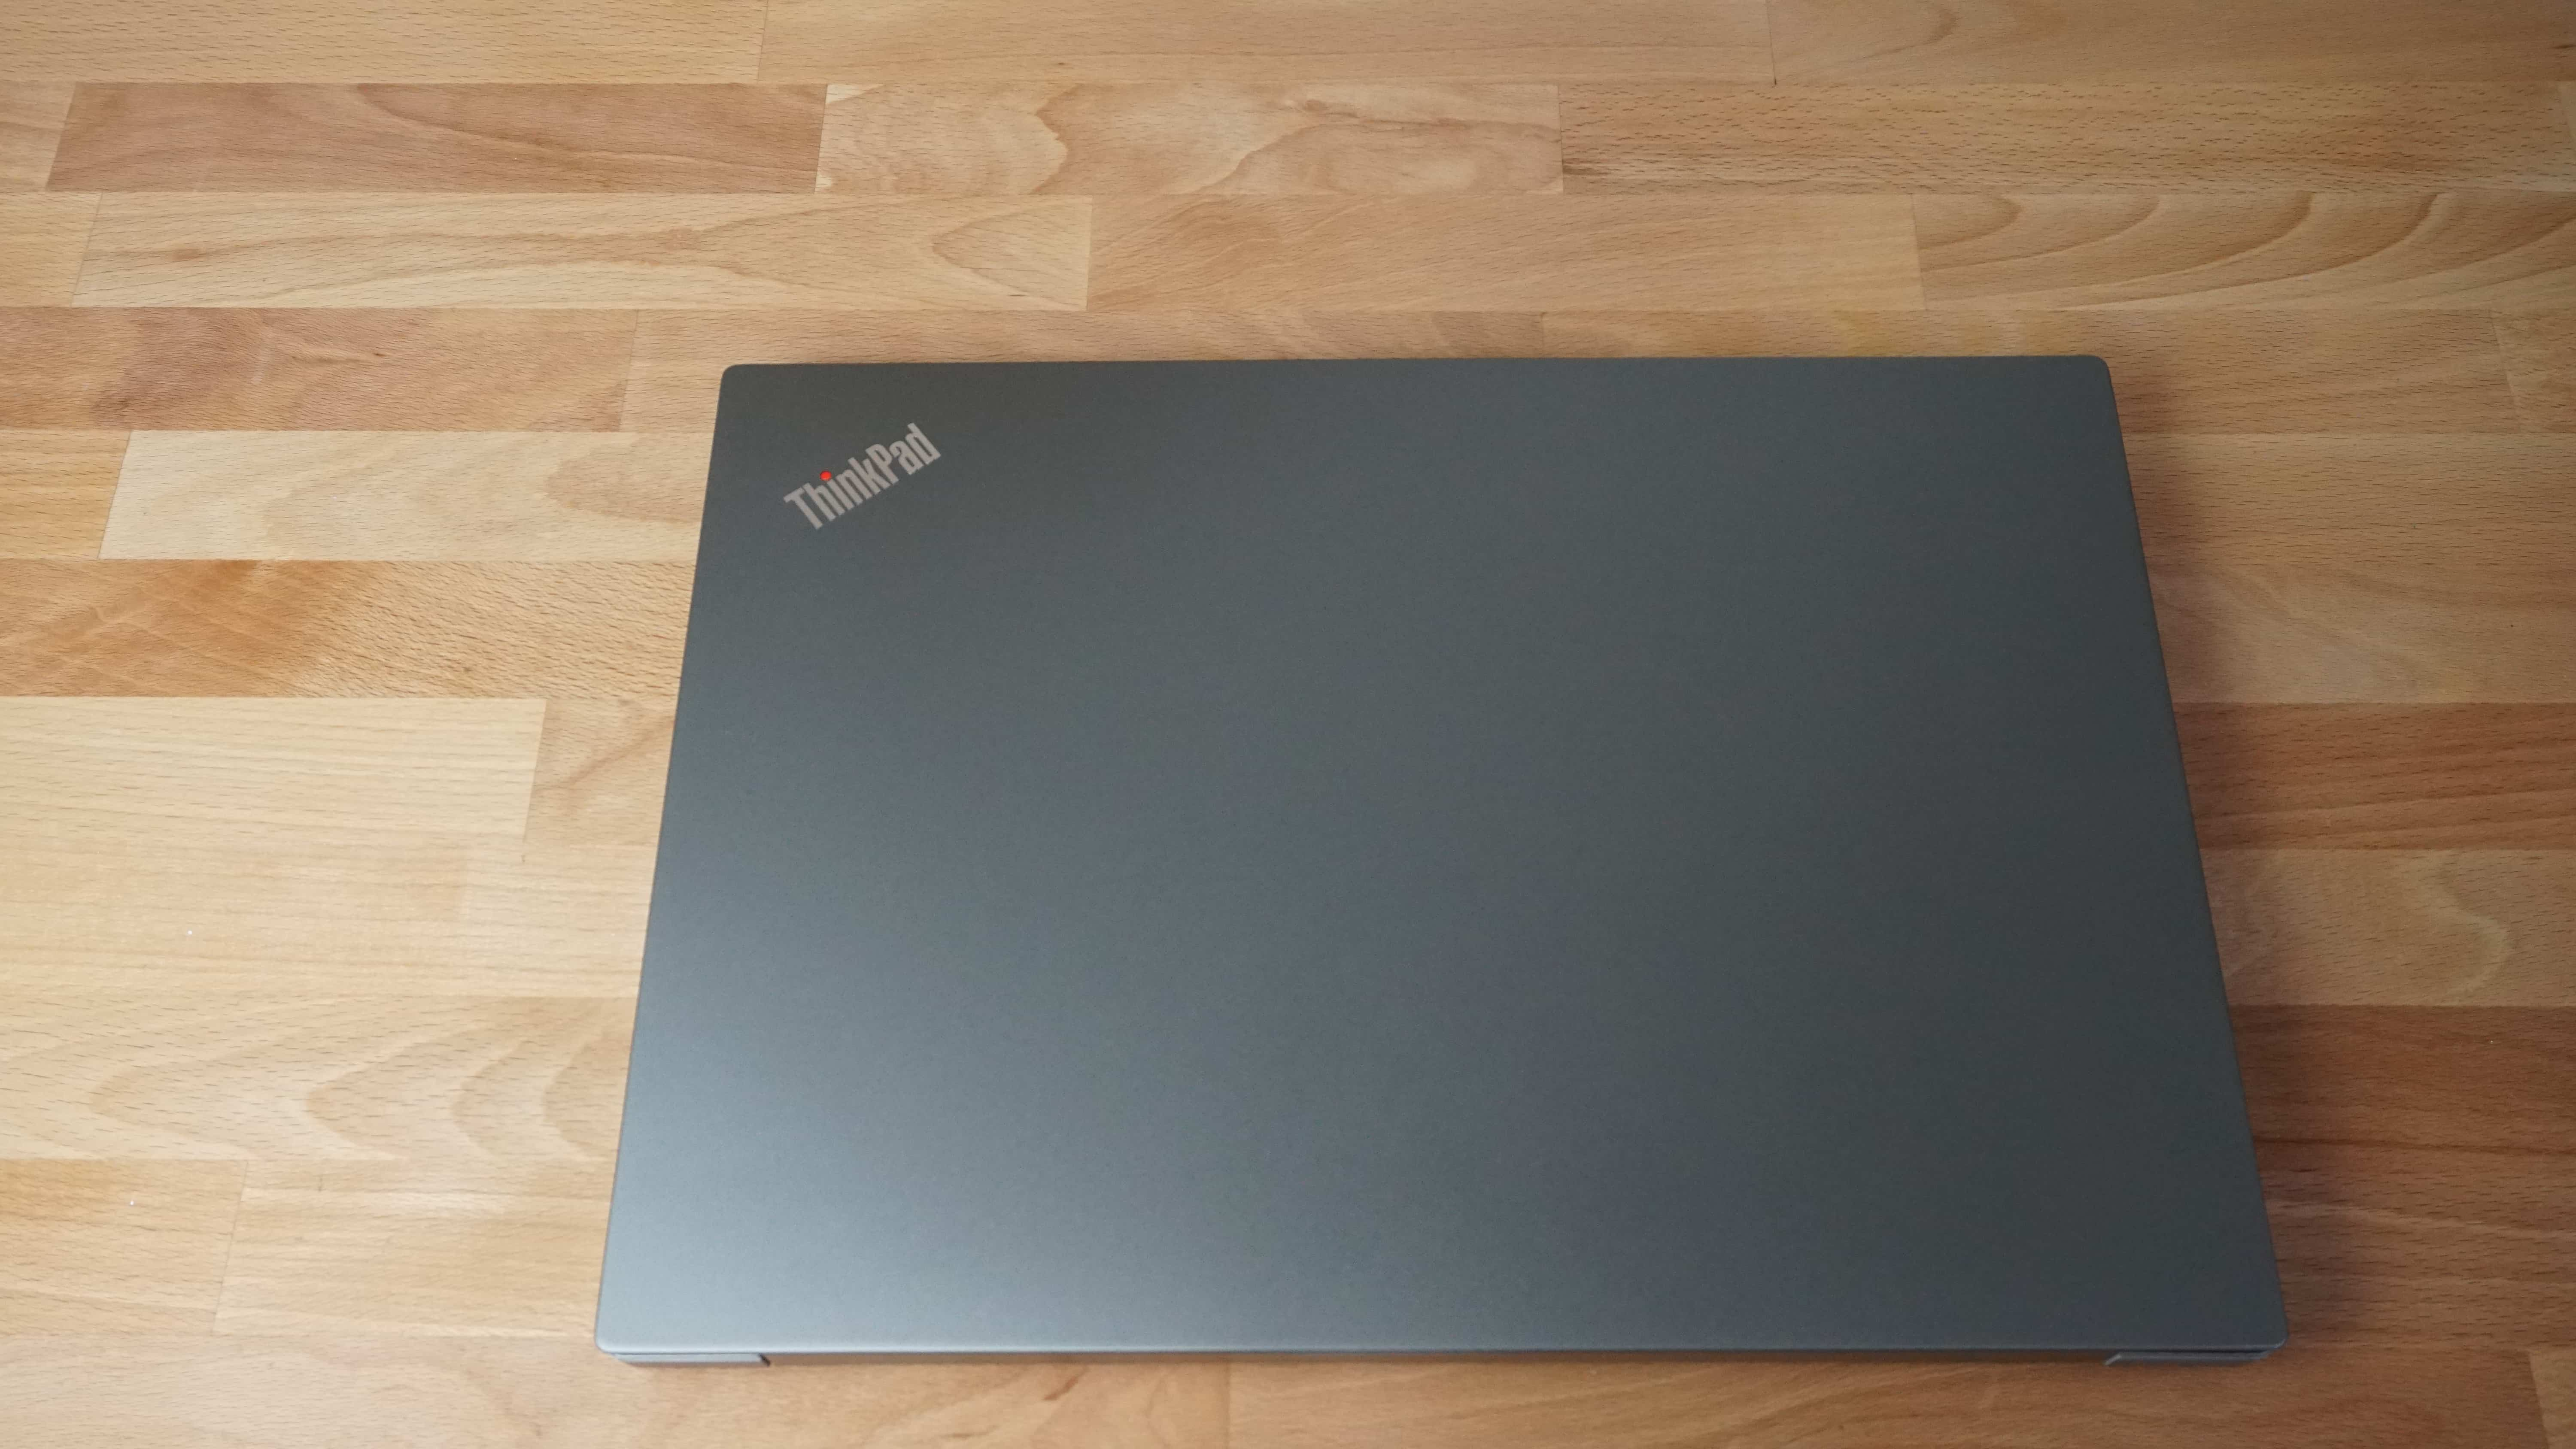 Lenovo-Thinkpad-E480-Design